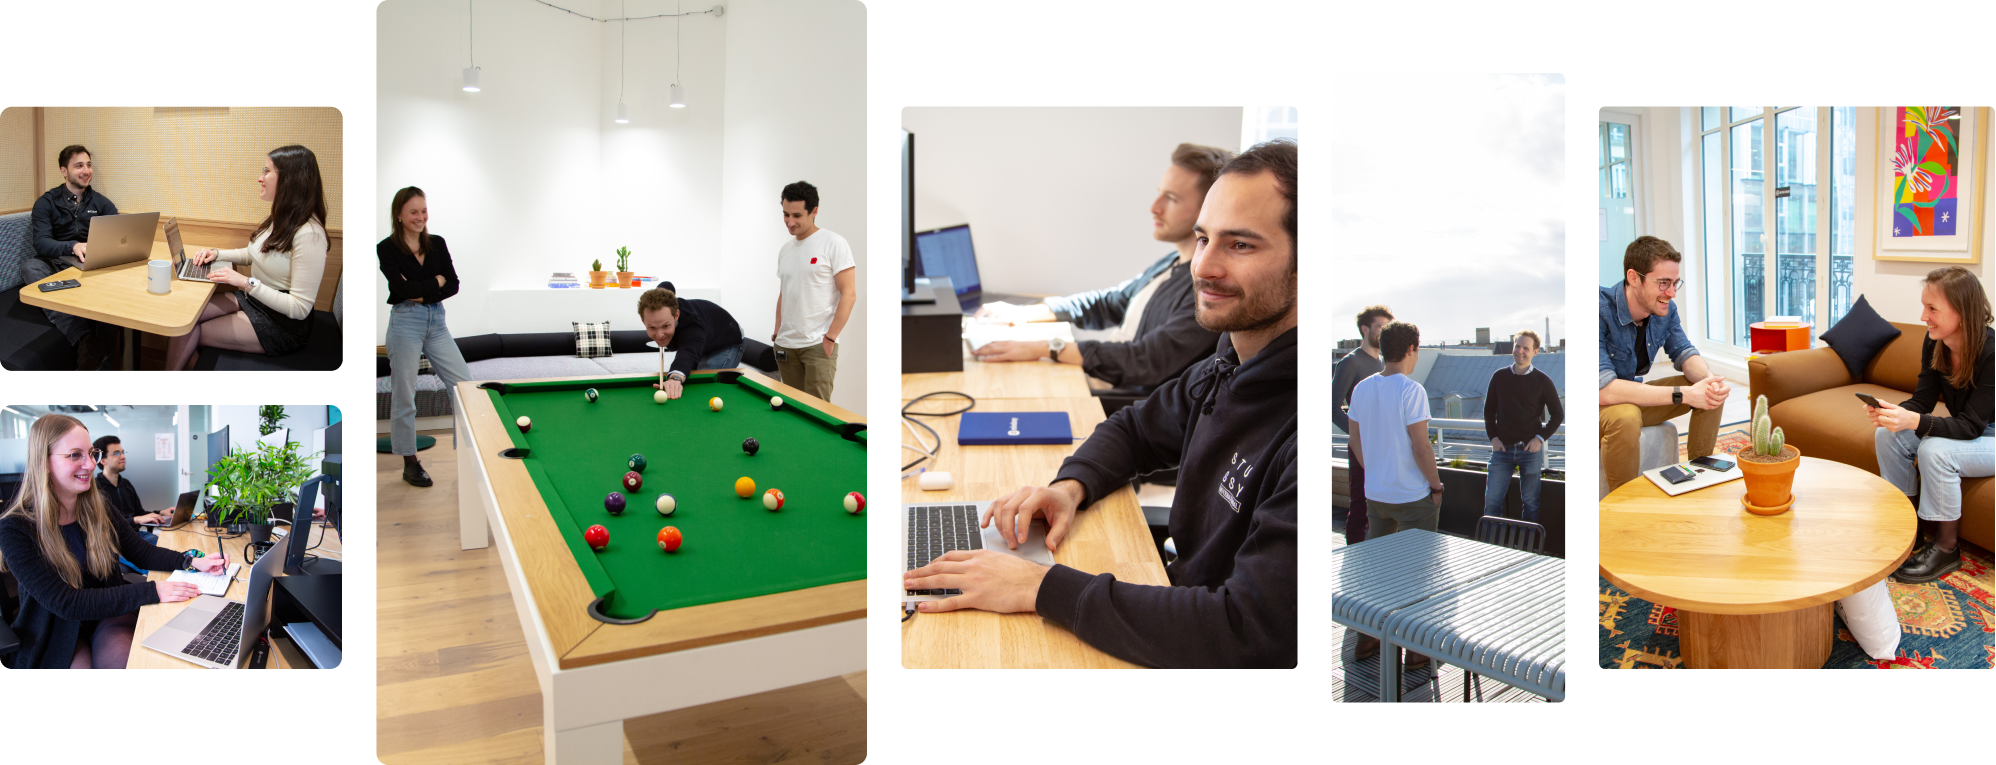 Employees Working and the Mindsay Office